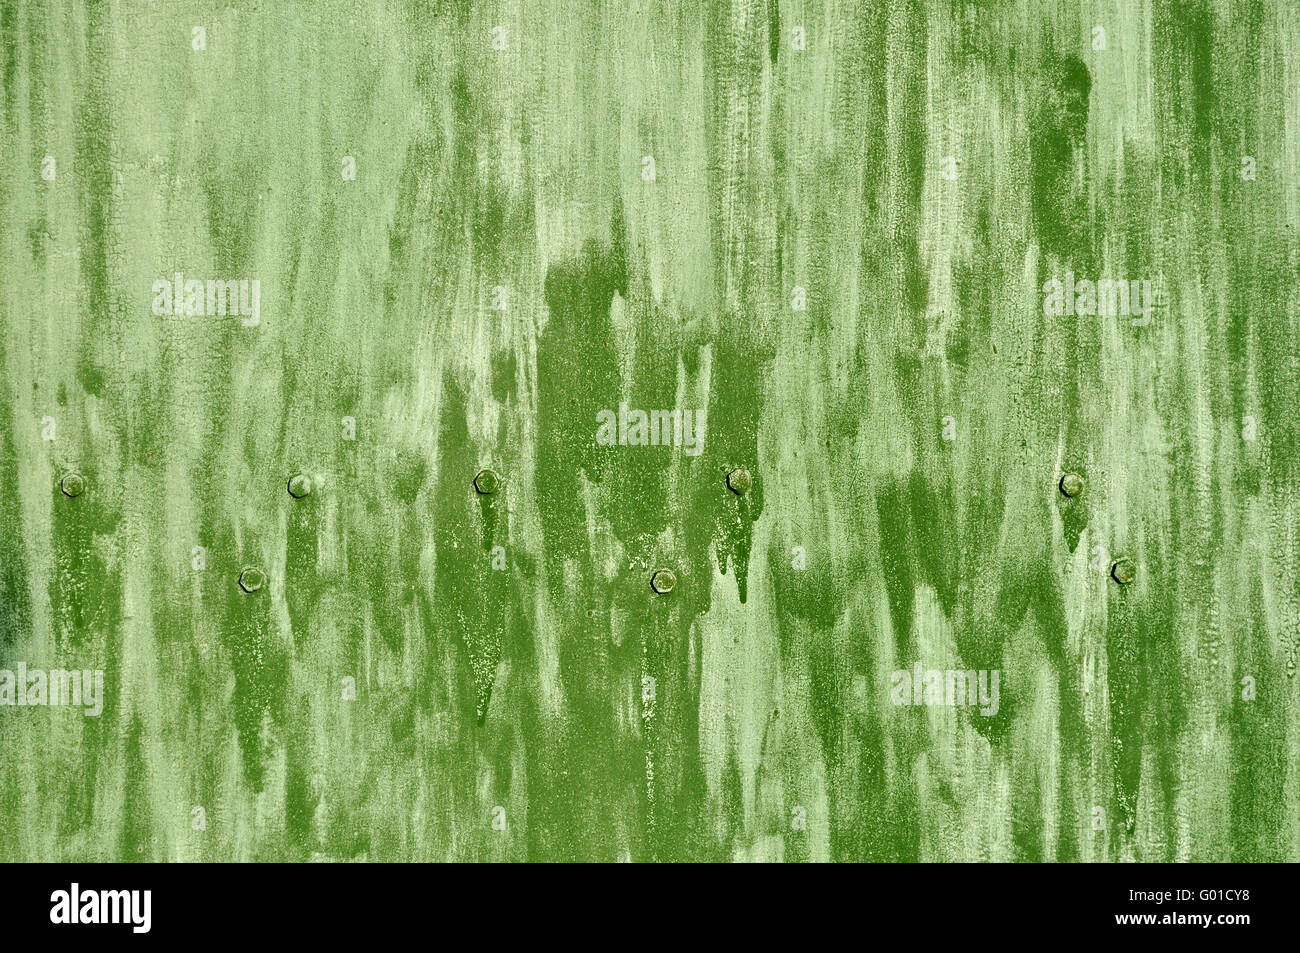 Close up of rough green colored metal background with bolts - Stock Image